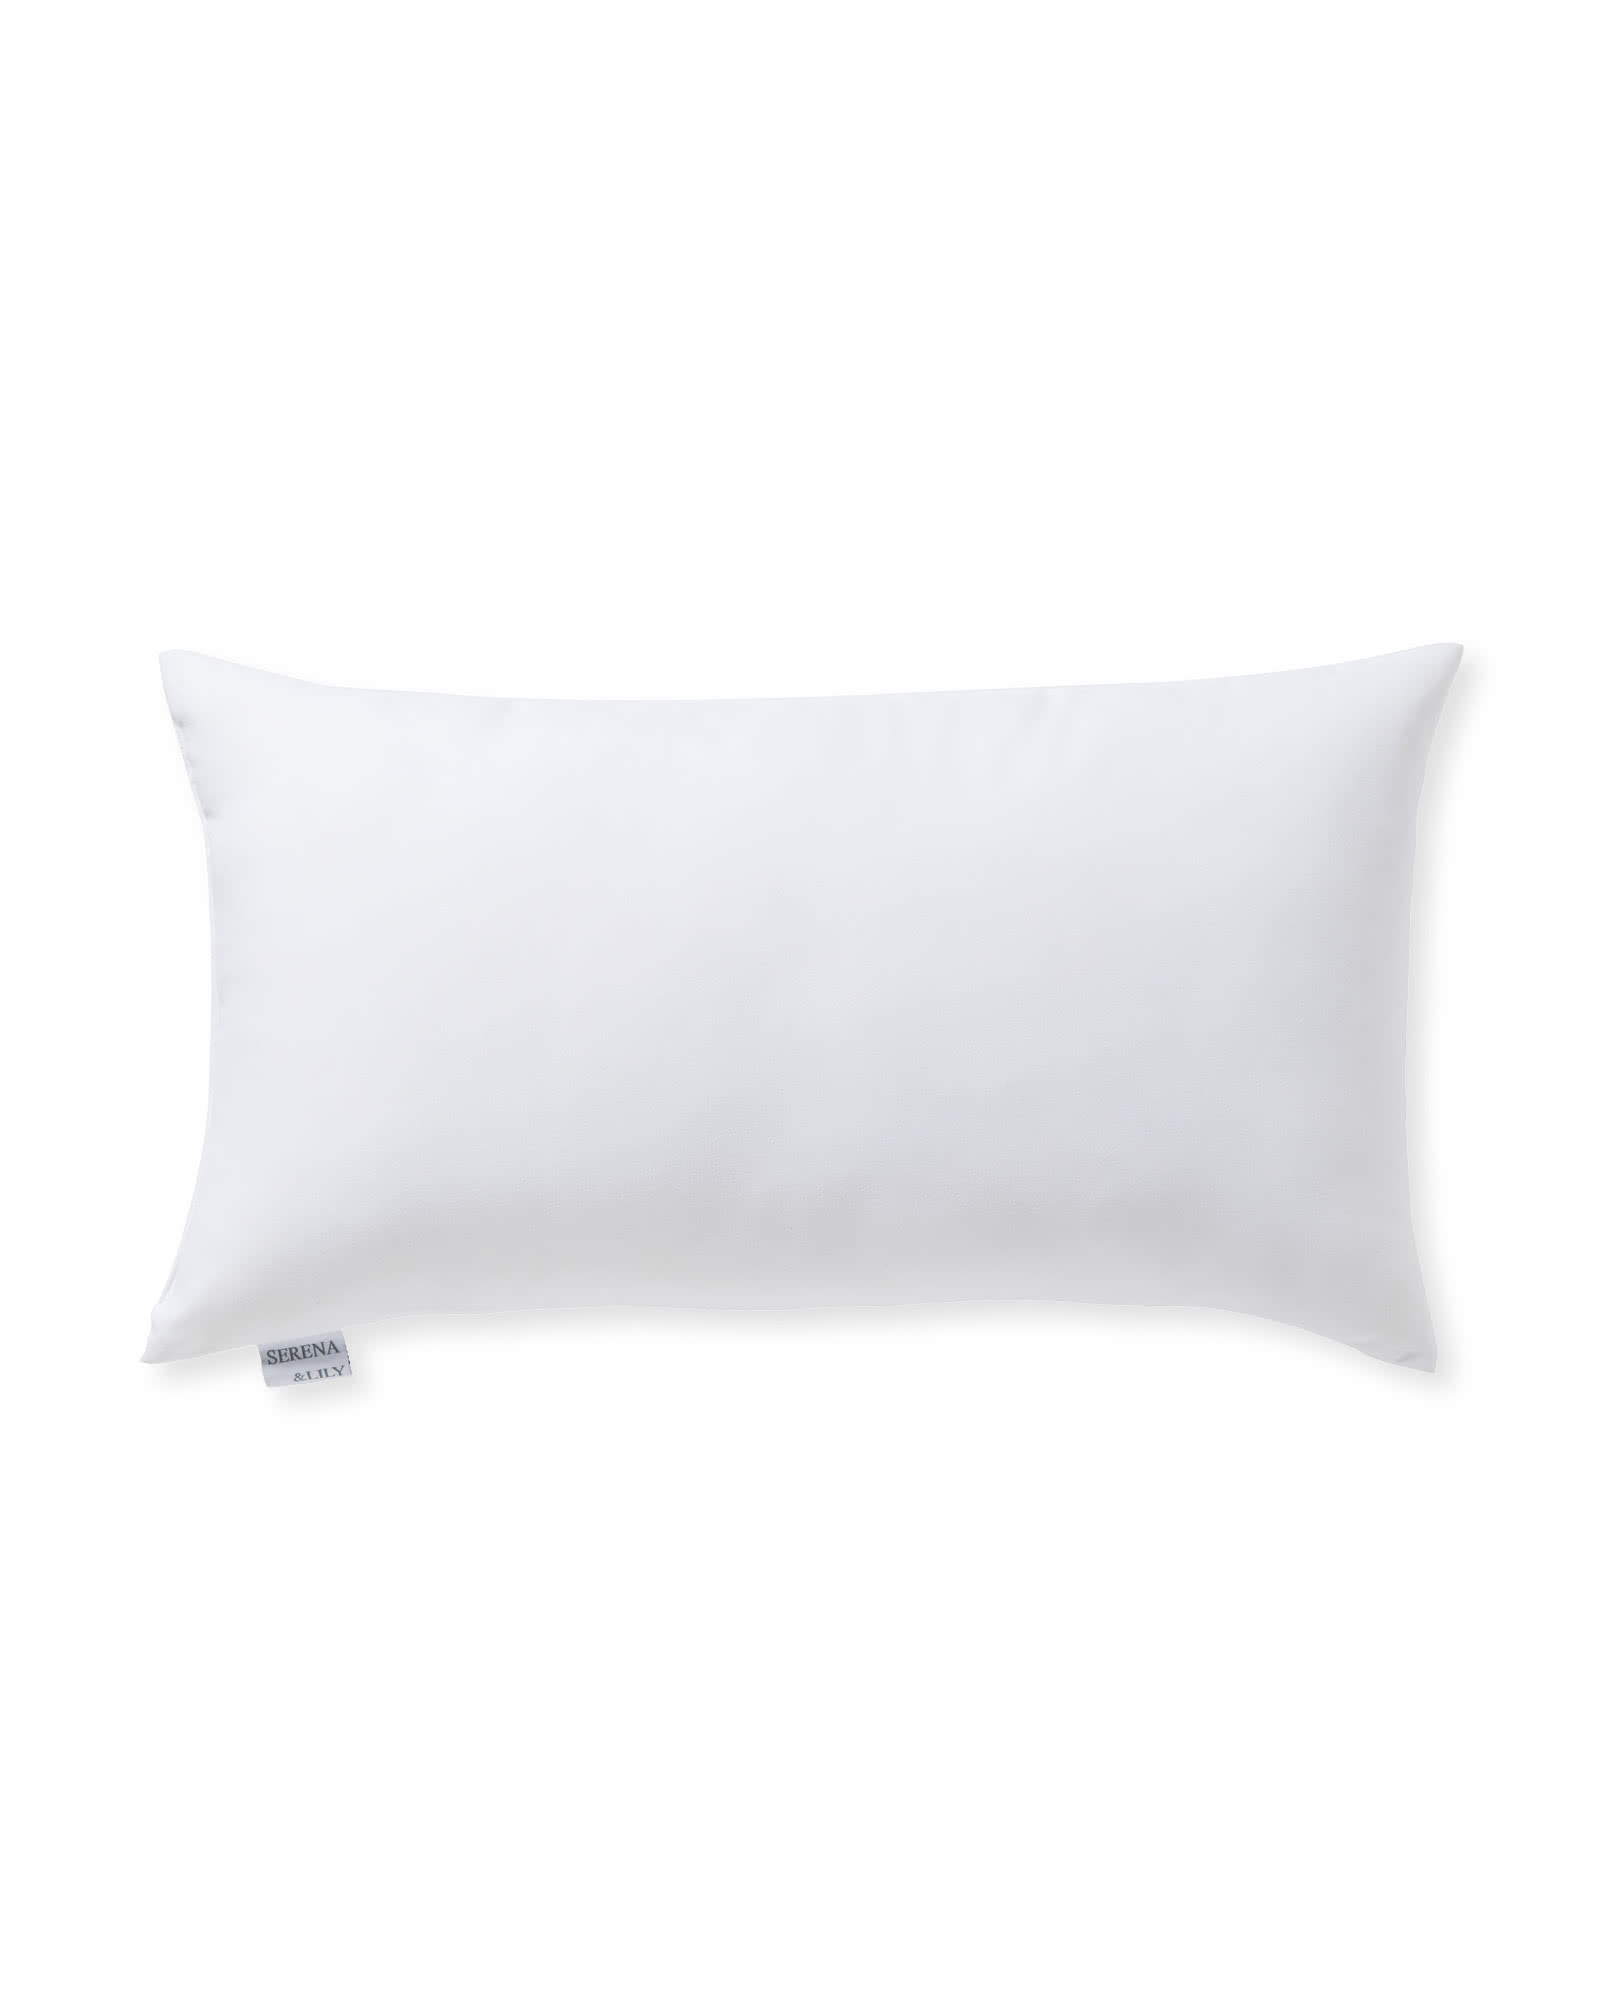 Outdoor Pillow Insert,